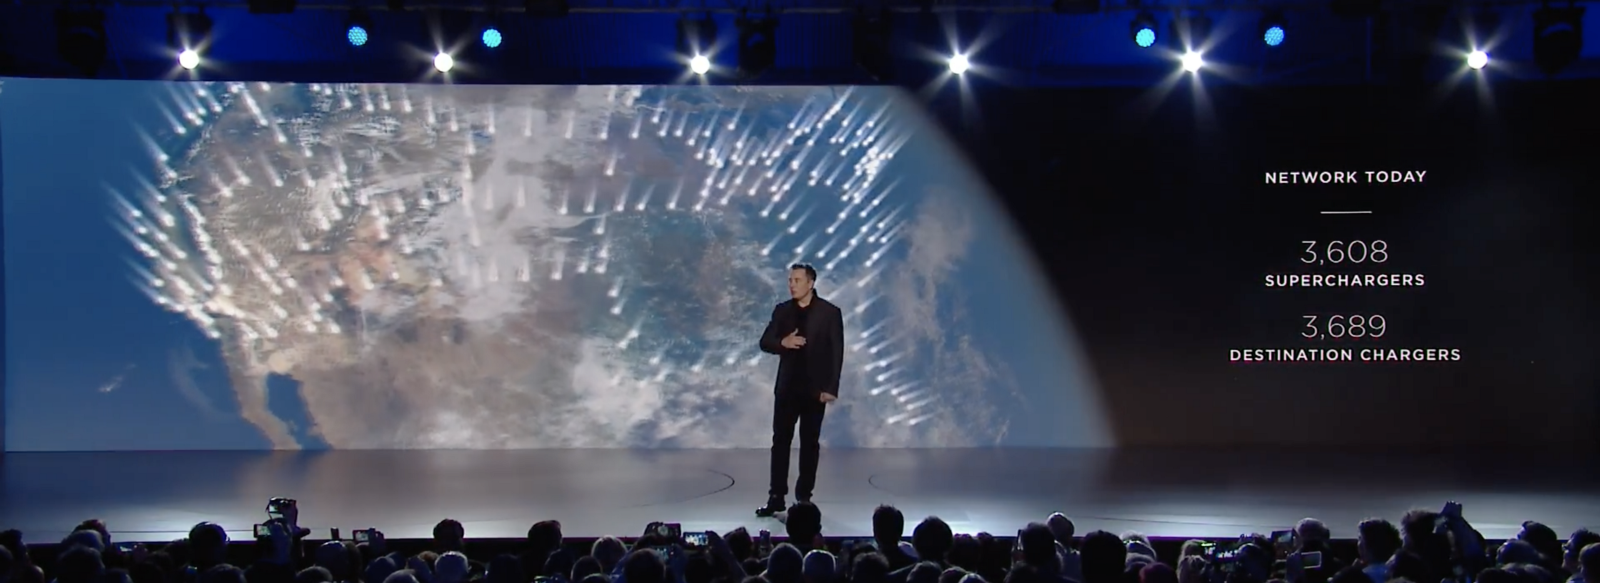 Musk introduces the Supercharger network as a tool which gives people the freedom to travel, rather than just a way to charge batteries